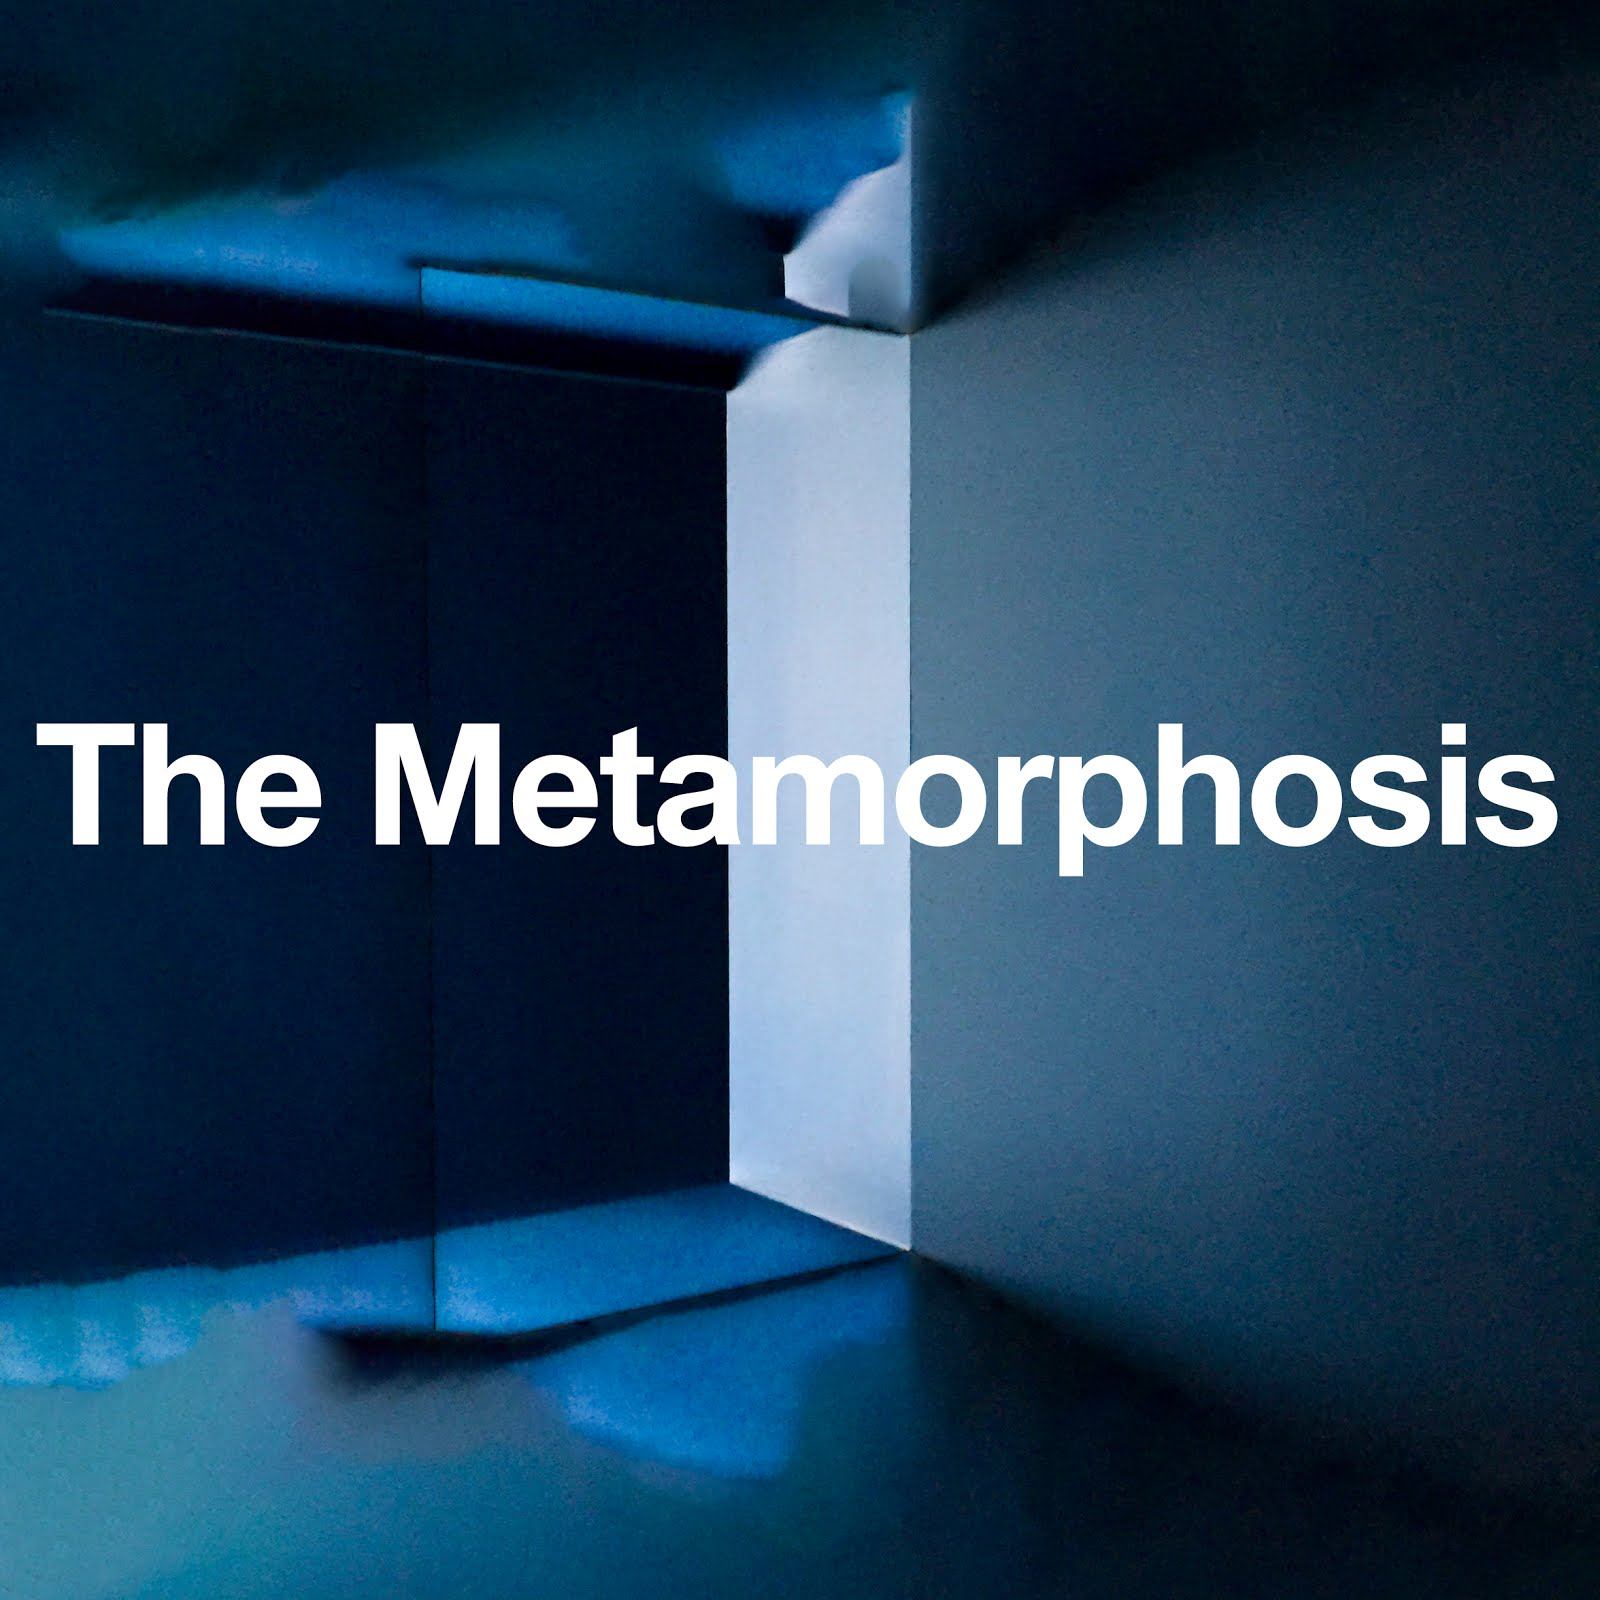 THE METAMORPHOSIS - A new adaptation